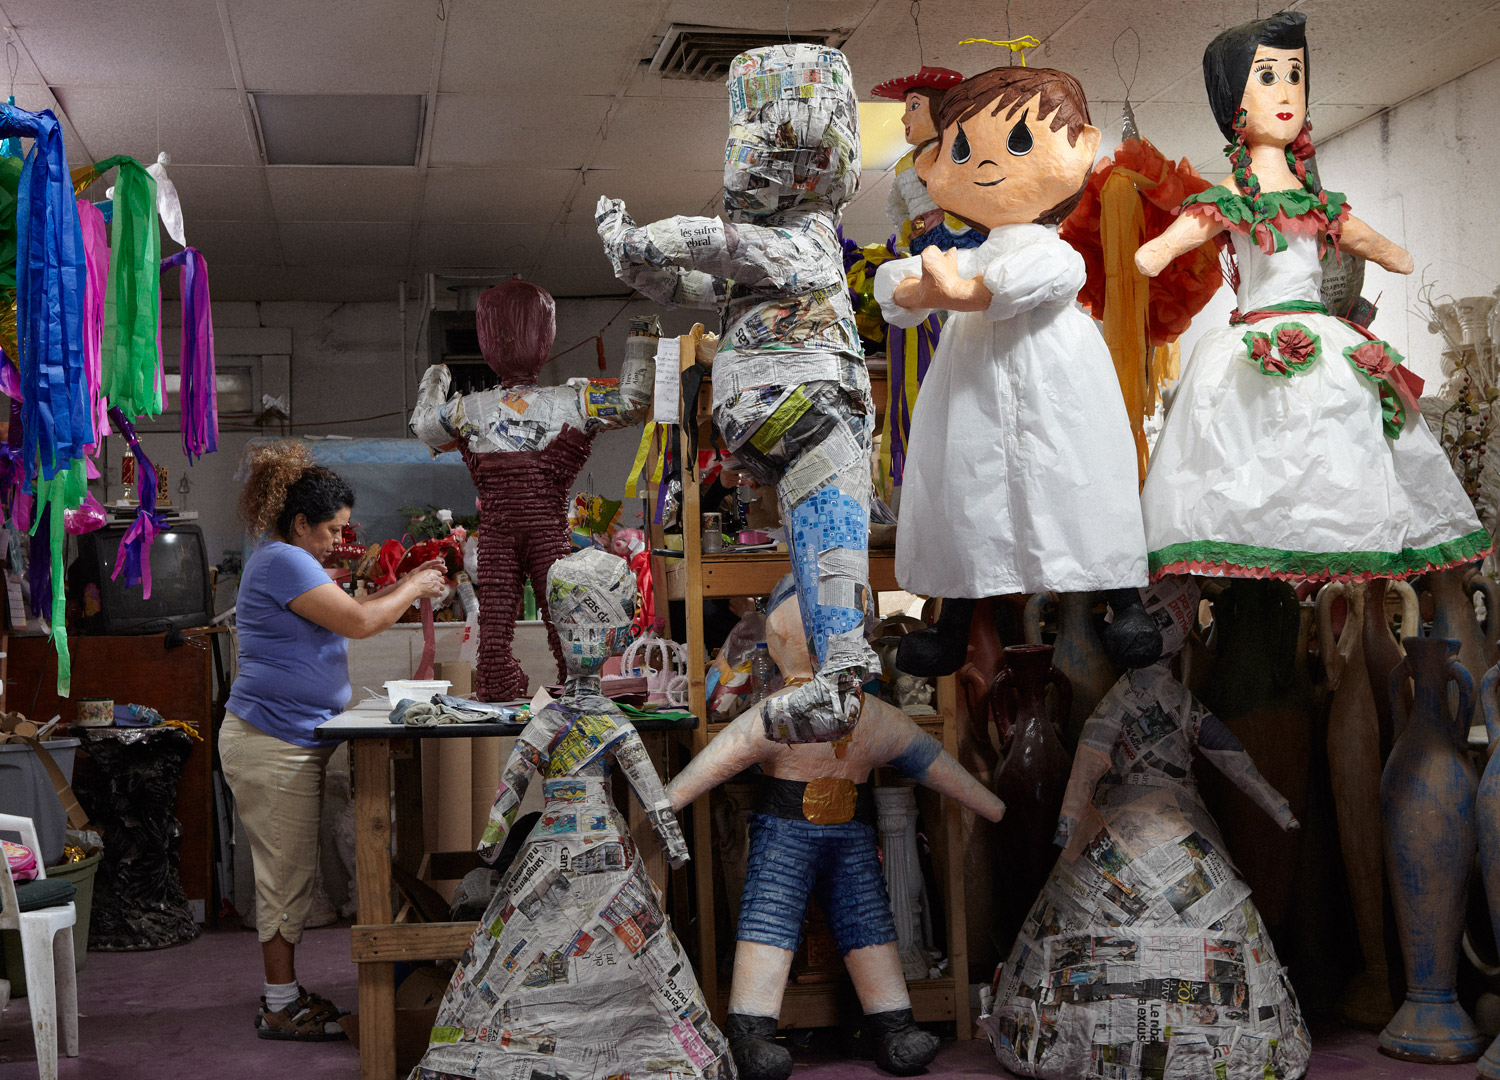 Alameda Avenue is the unofficial piñata district of El Paso. On nearby side streets you can find big papier-mâché forms drying in backyards. Josefina buys the forms wholesale and then dresses them herself.